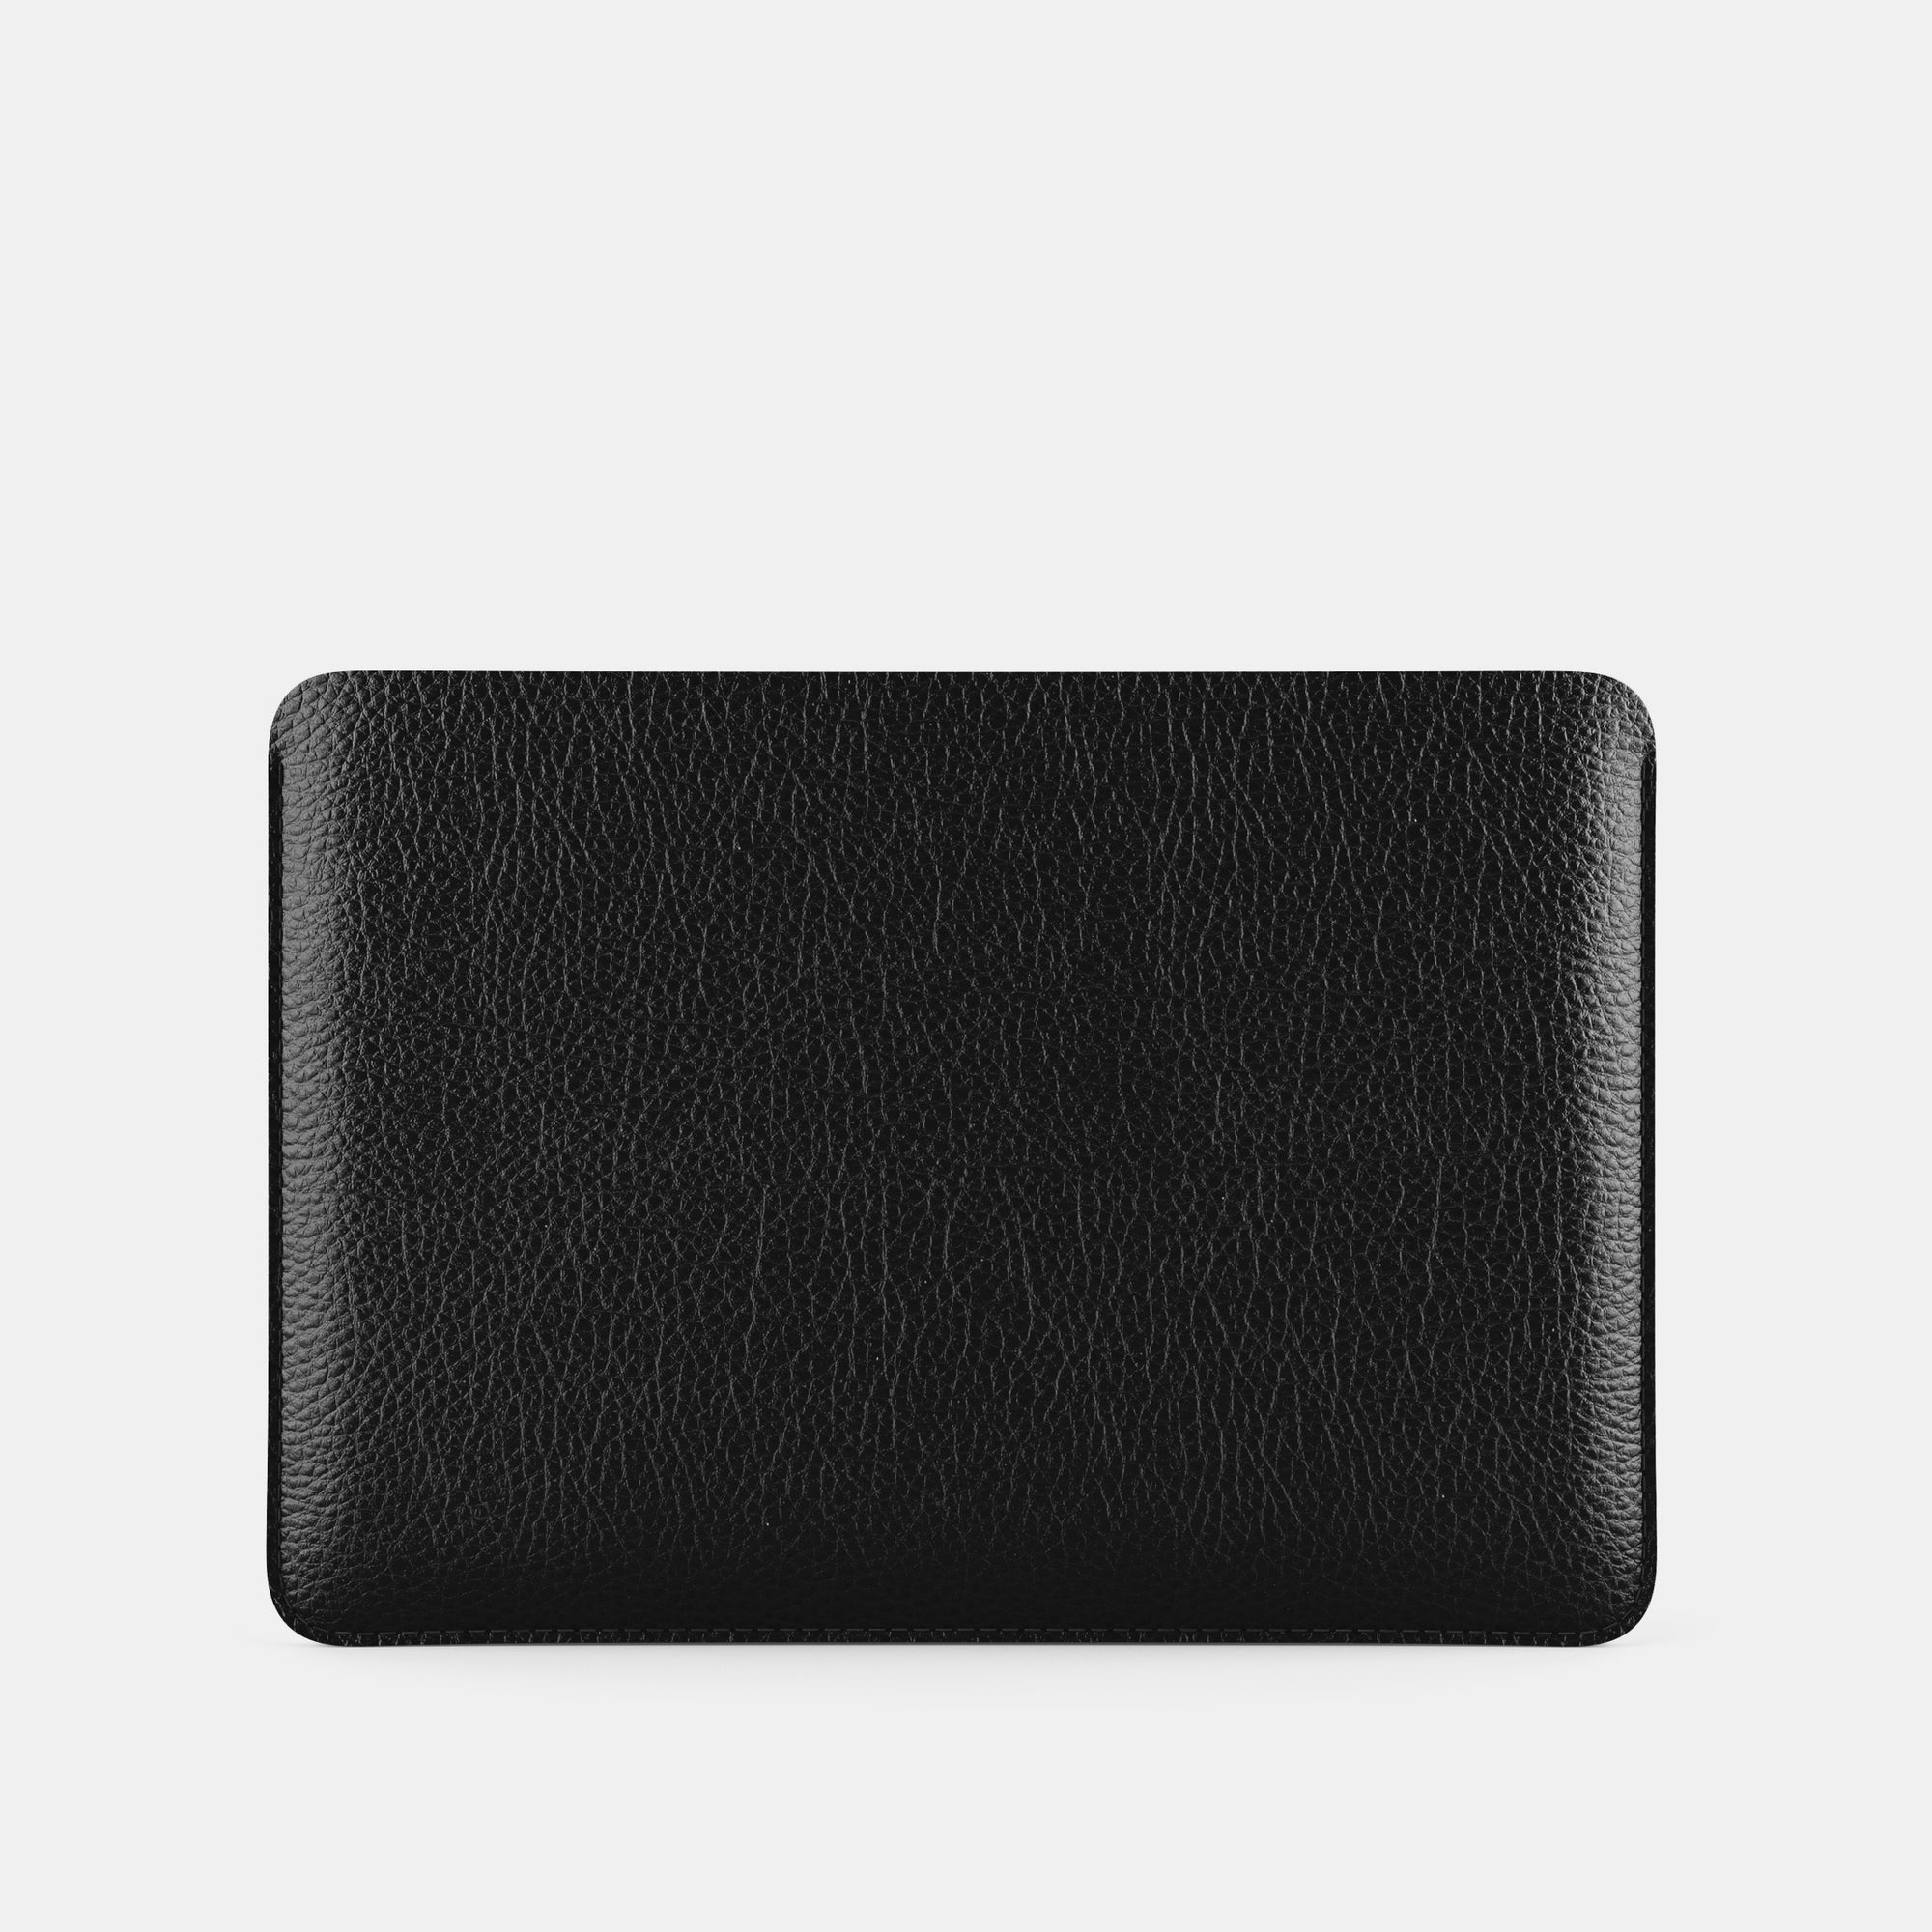 iPad Sleeve - Black and Black - RYAN London